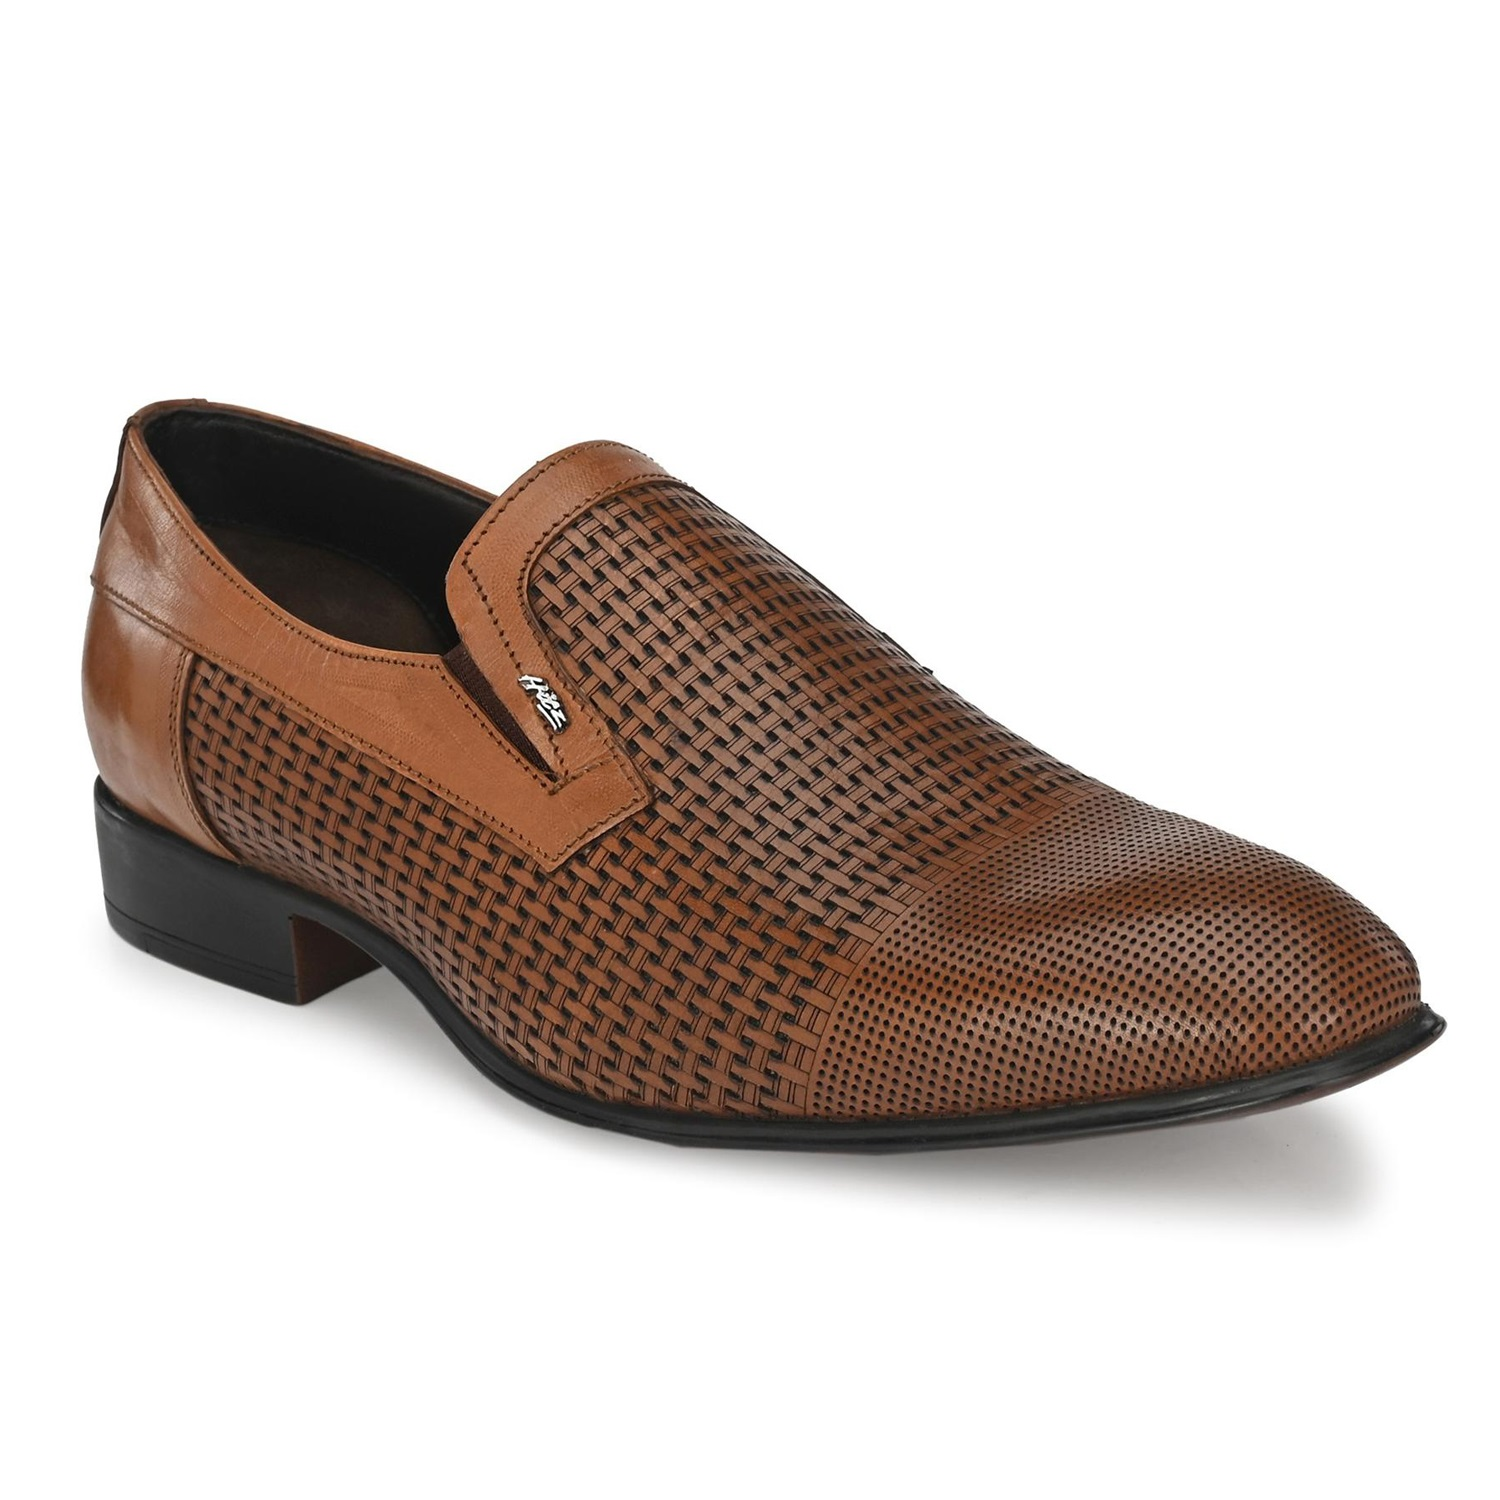 Hitz   Hitz Brown_Genuine Leather Slip-On Party Wear Shoes For Men